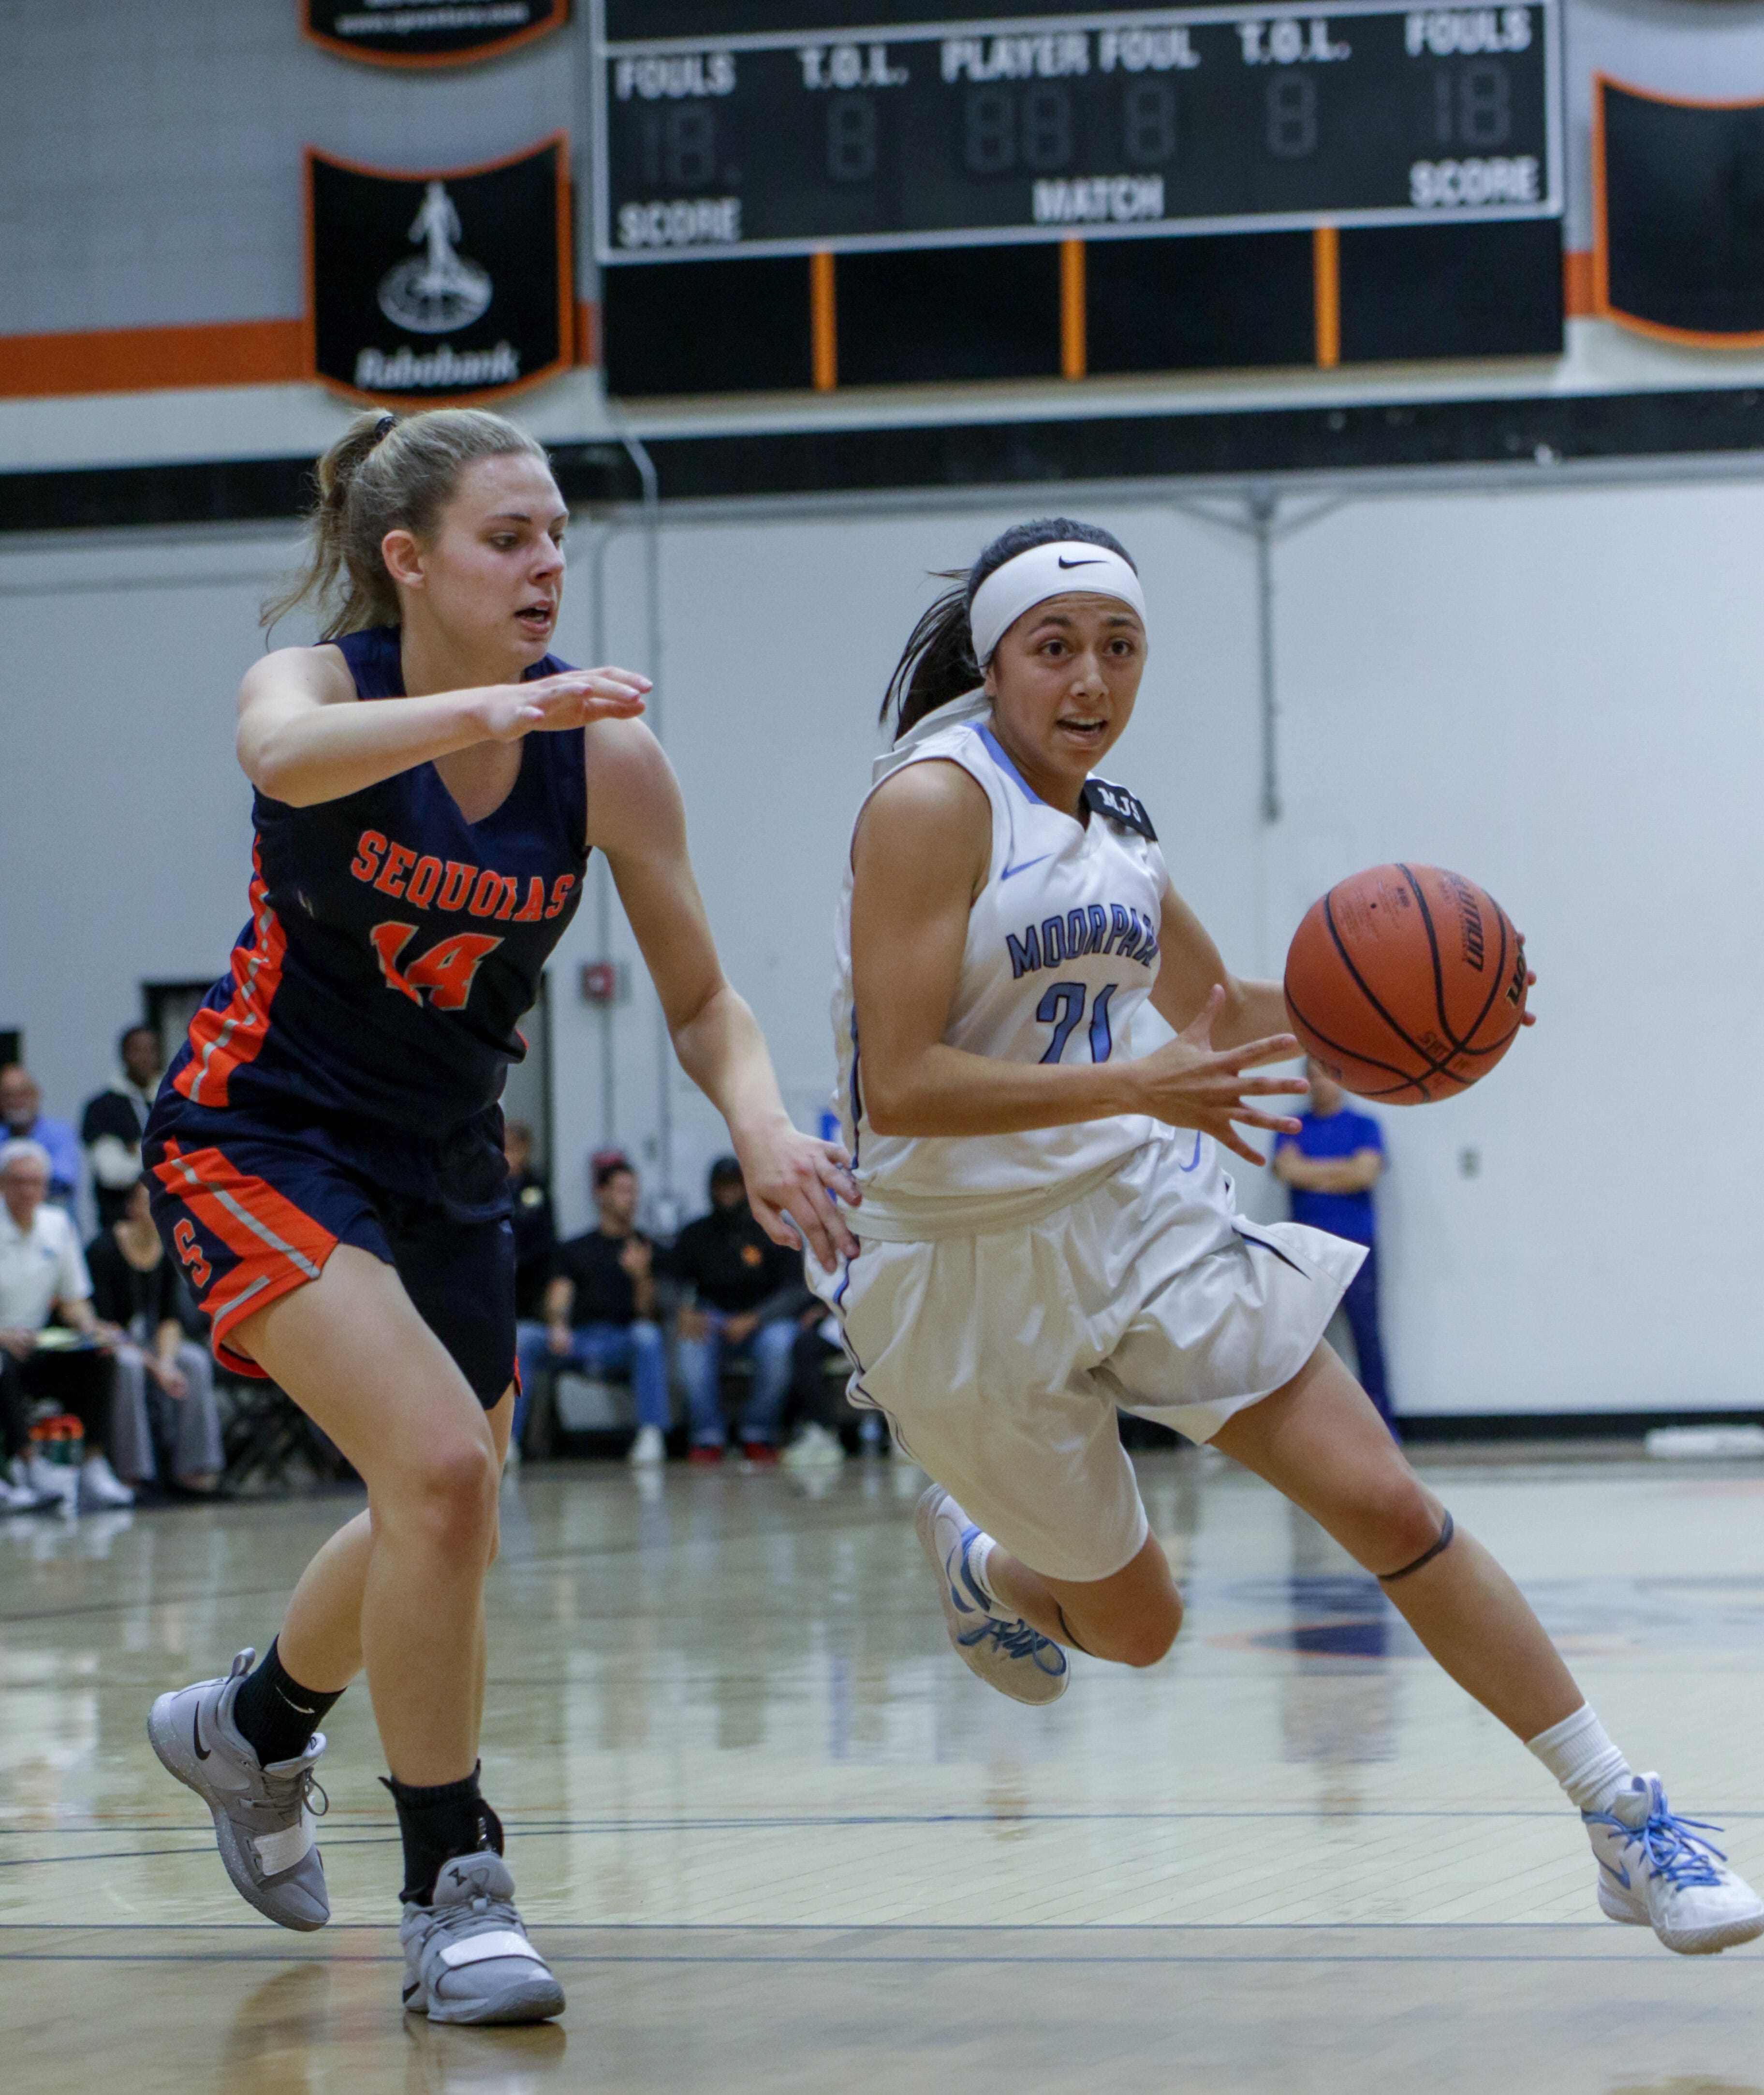 Freshman Jazzy Carrasco dribbles past a defender during the CCCAA state quarterfinal against College of the Sequoias on Friday night at Ventura College. Moorpark won, 66-58.